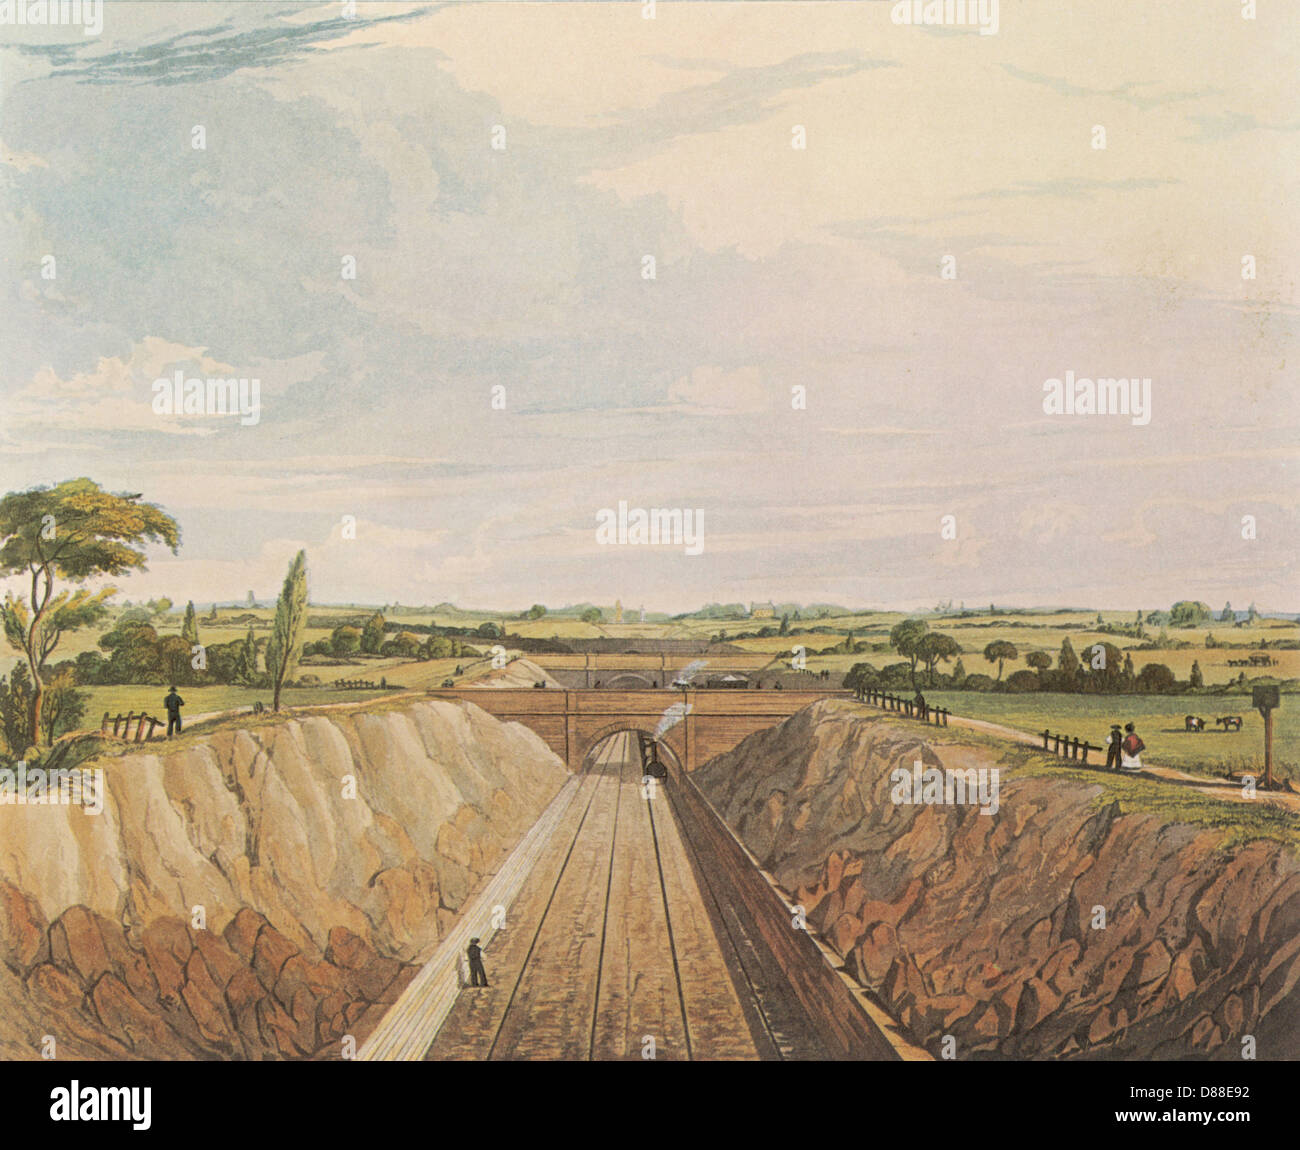 Rail Liverpool 1830 - Stock Image